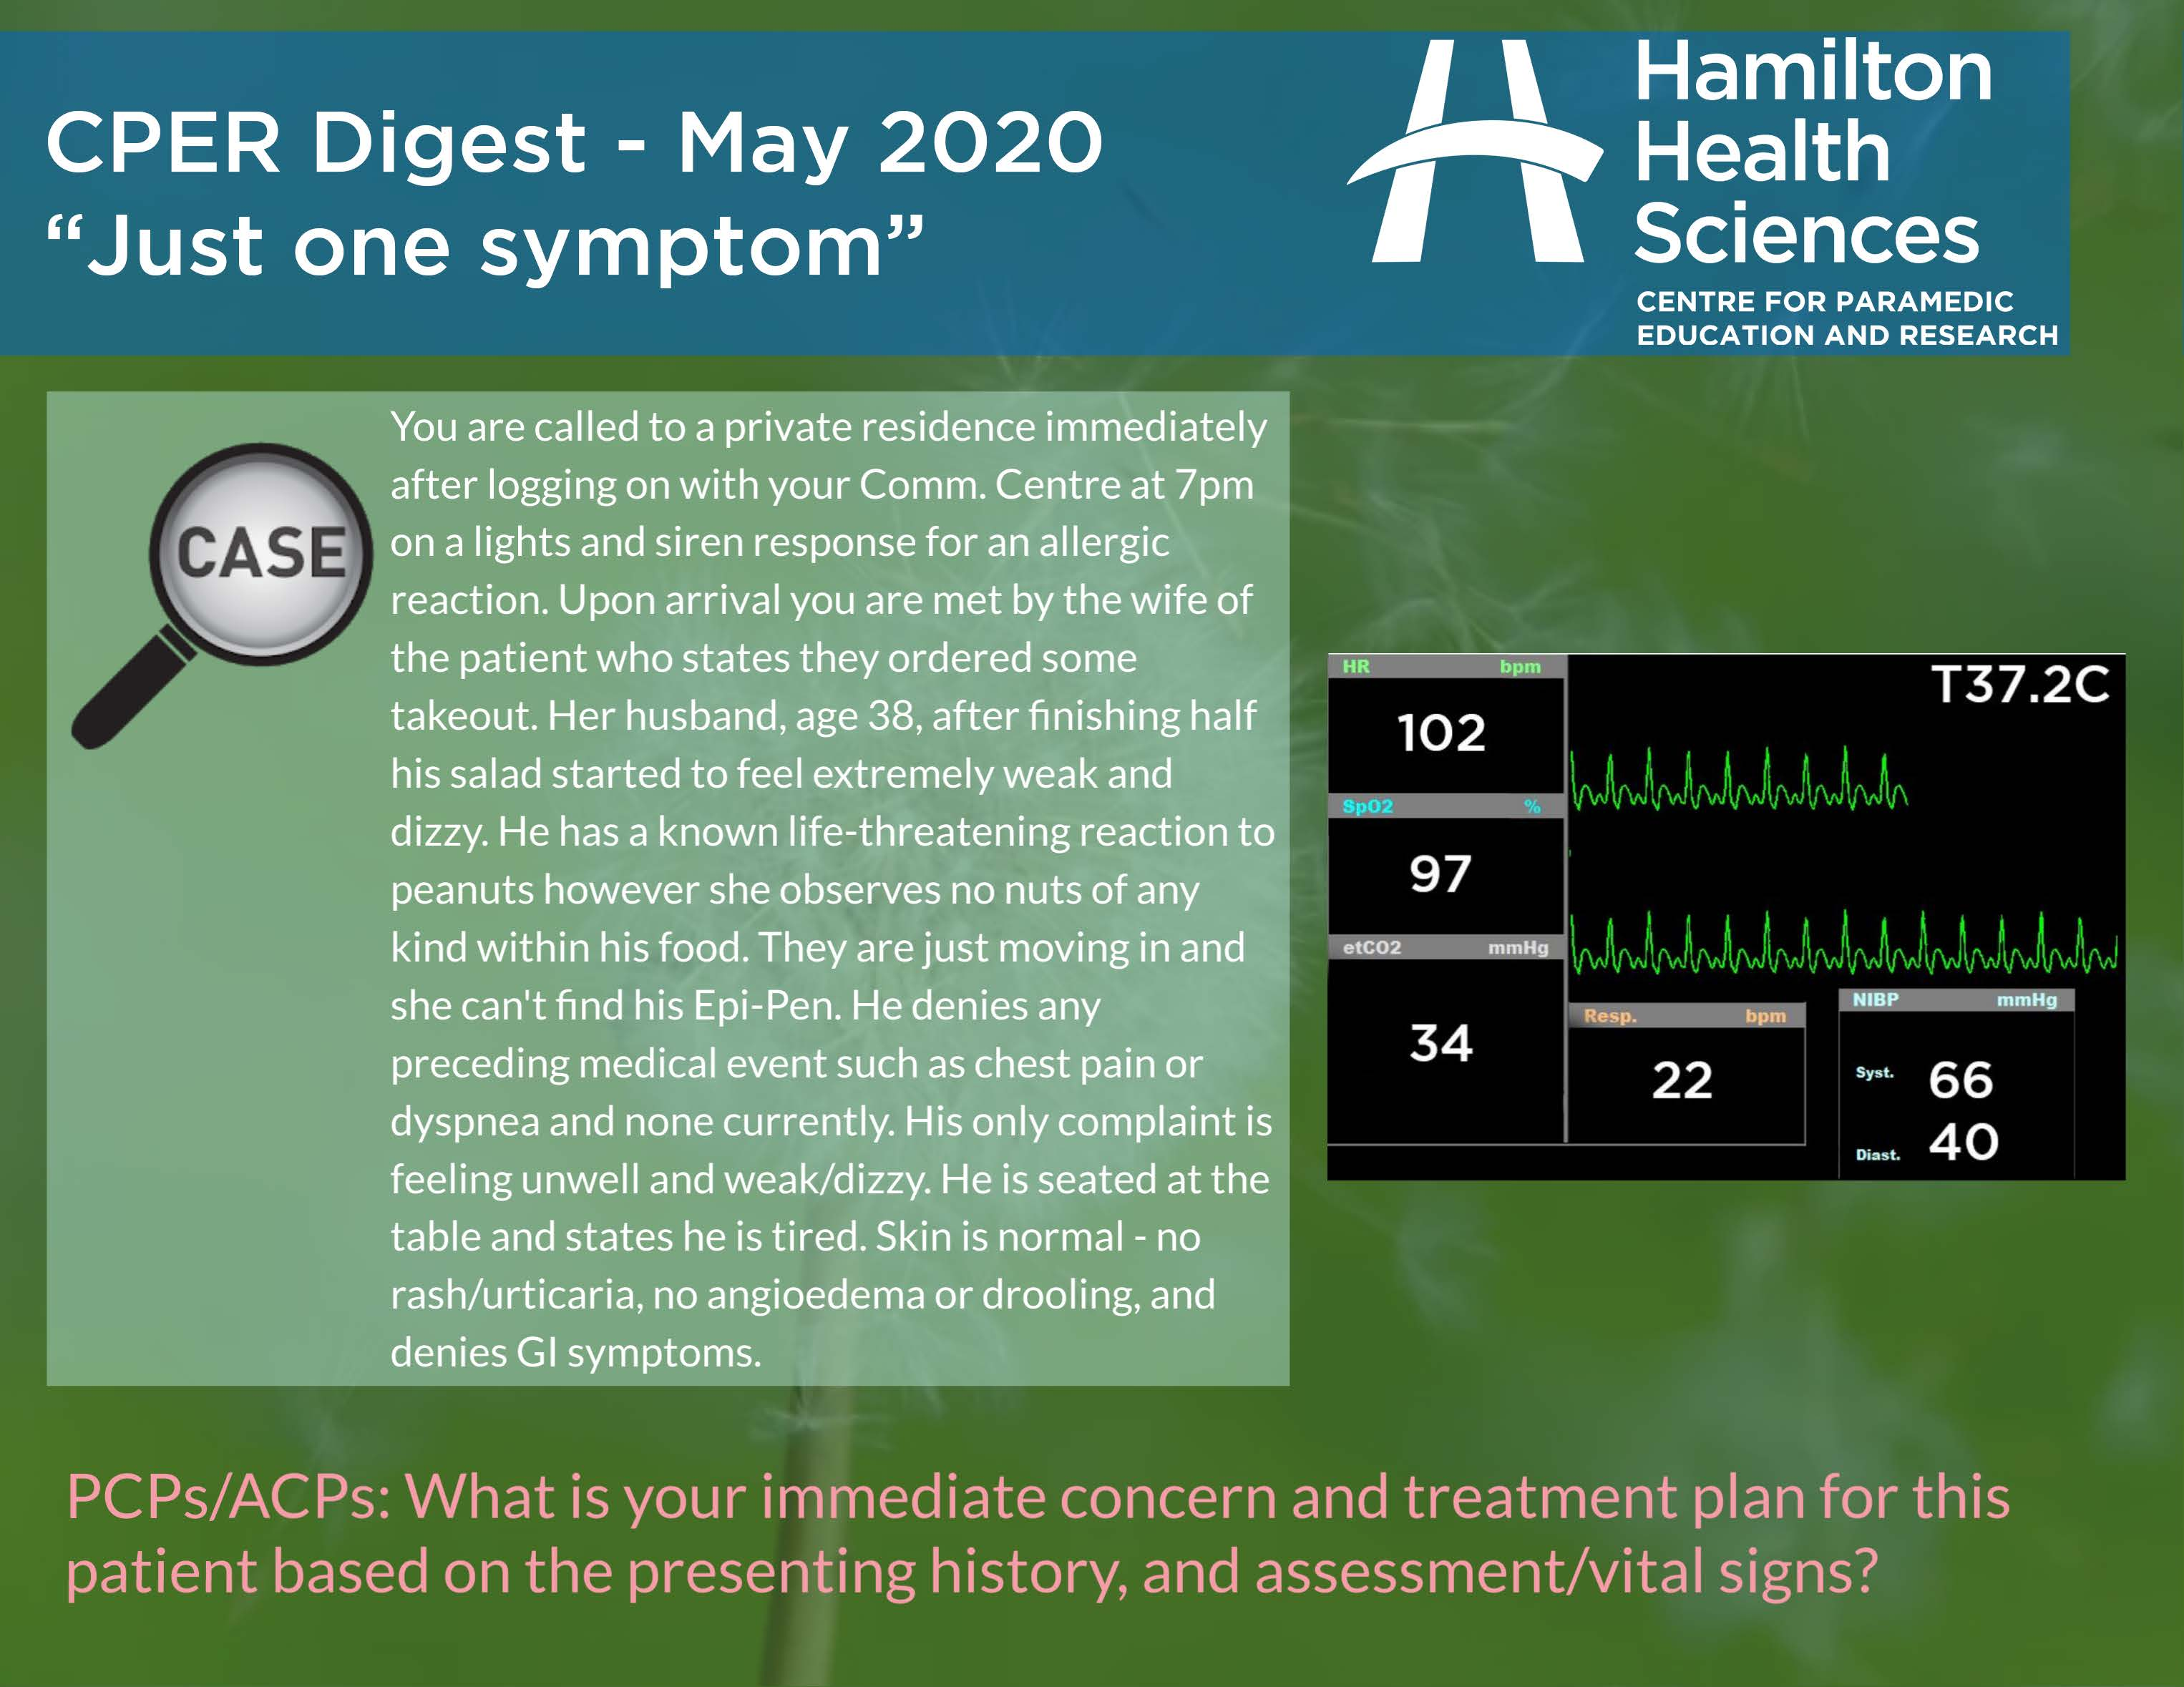 CPER Digest May 2020 Page 1